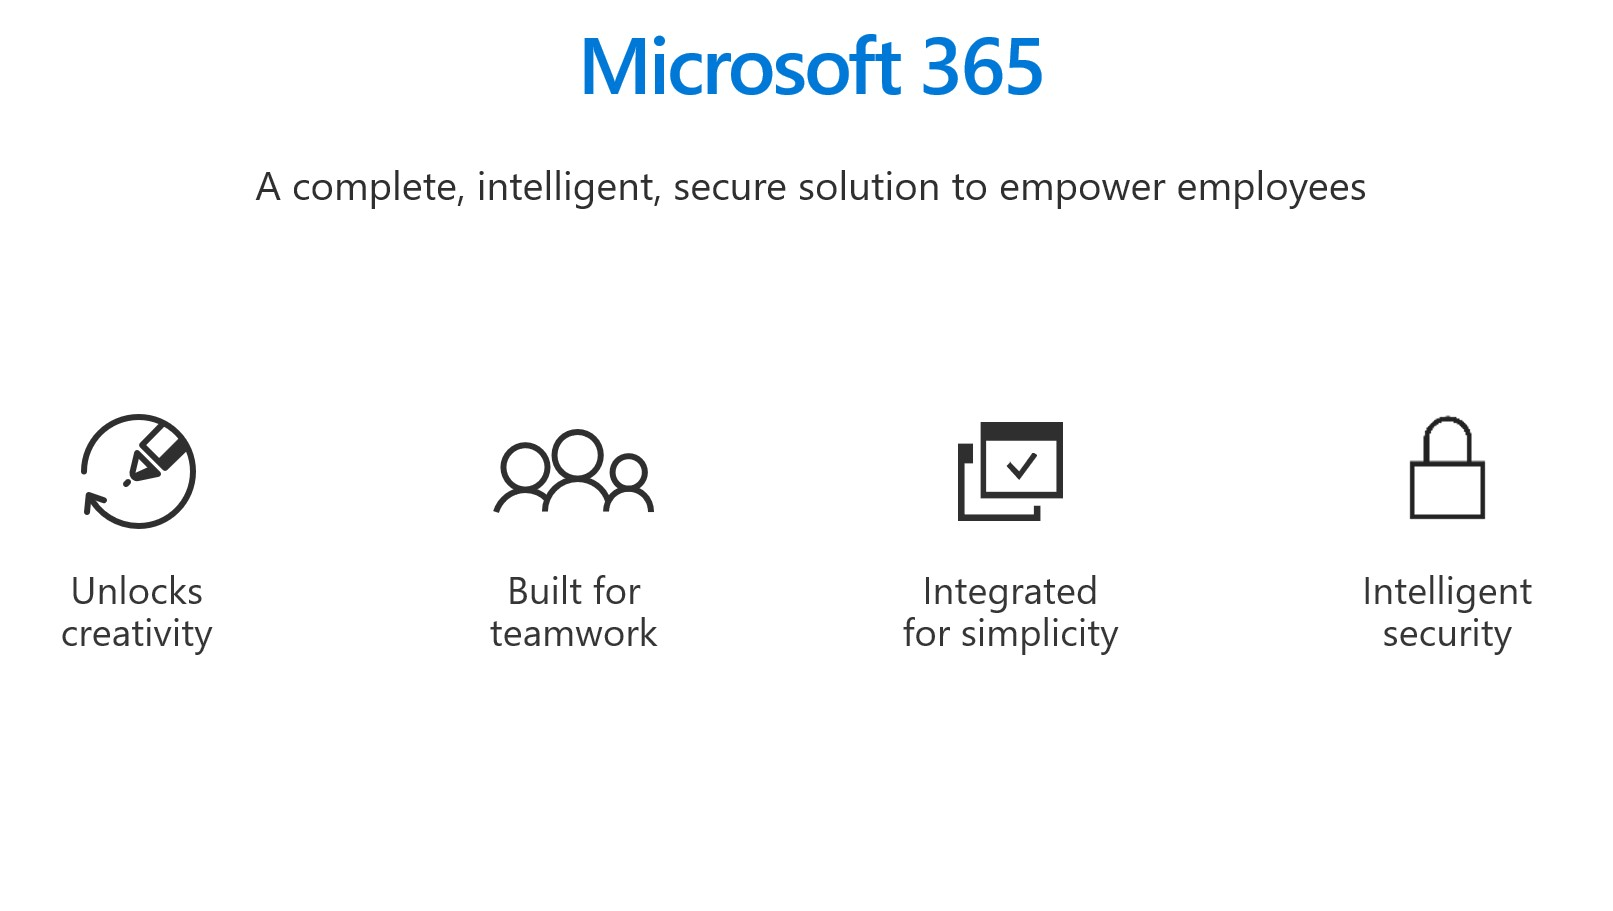 Image of Microsoft 365 value proposition